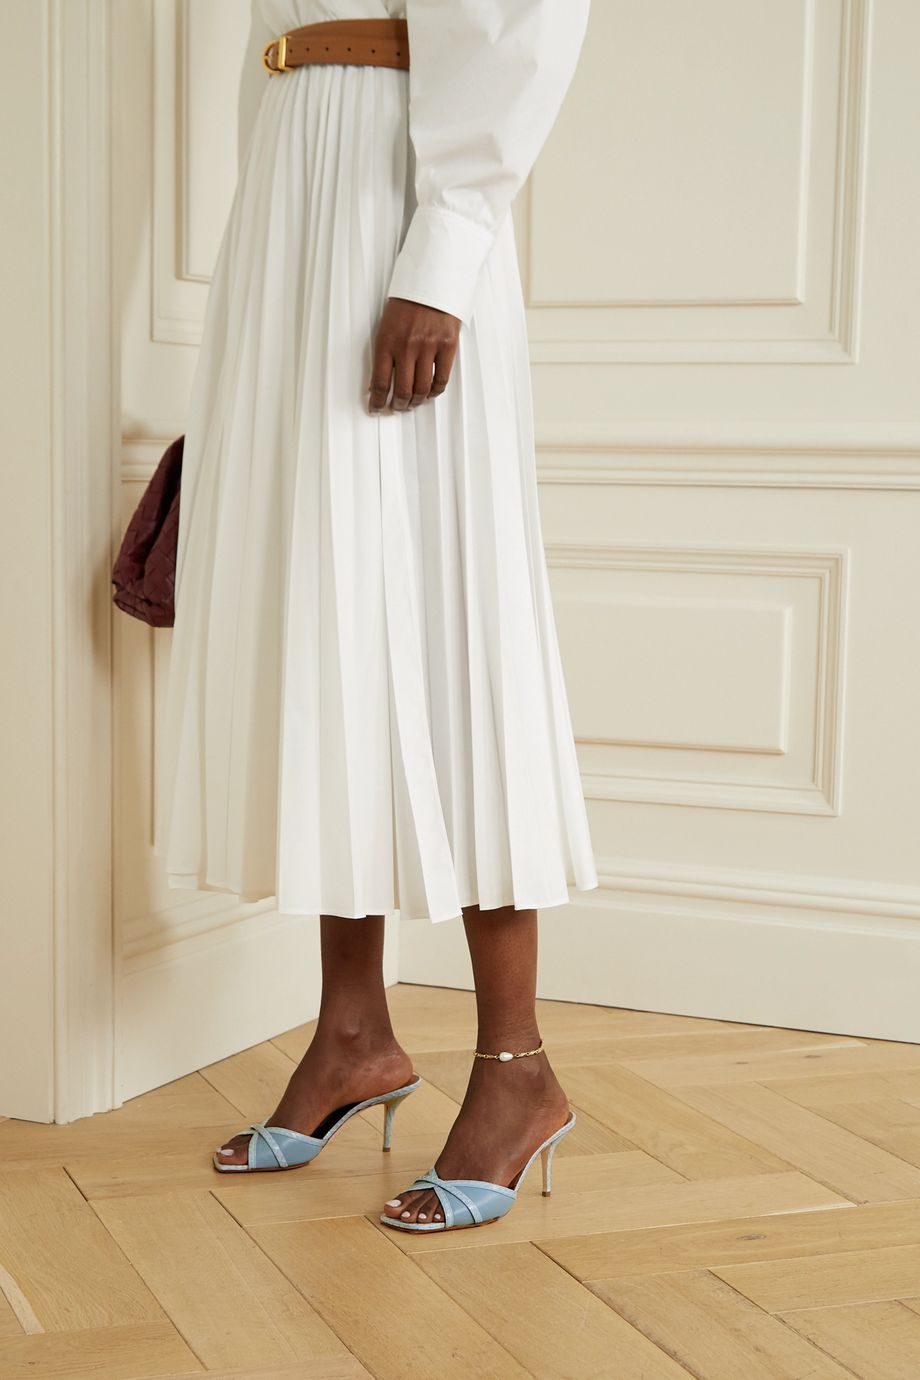 Malone Souliers Perla 70 elaphe and leather mules